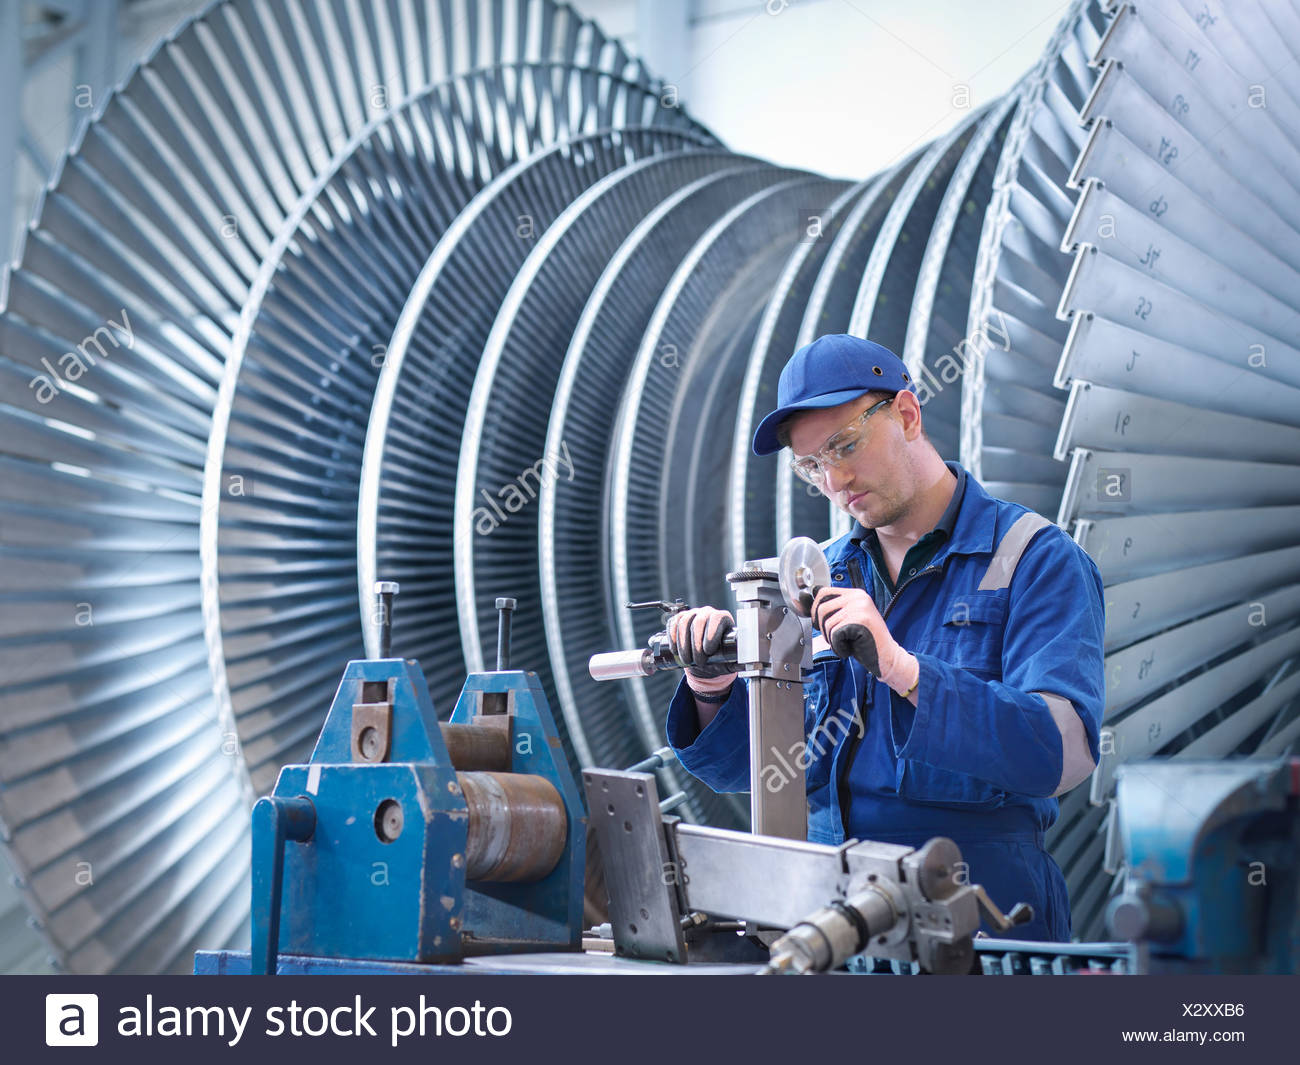 Engineer at workstation in front of steam turbine - Stock Image